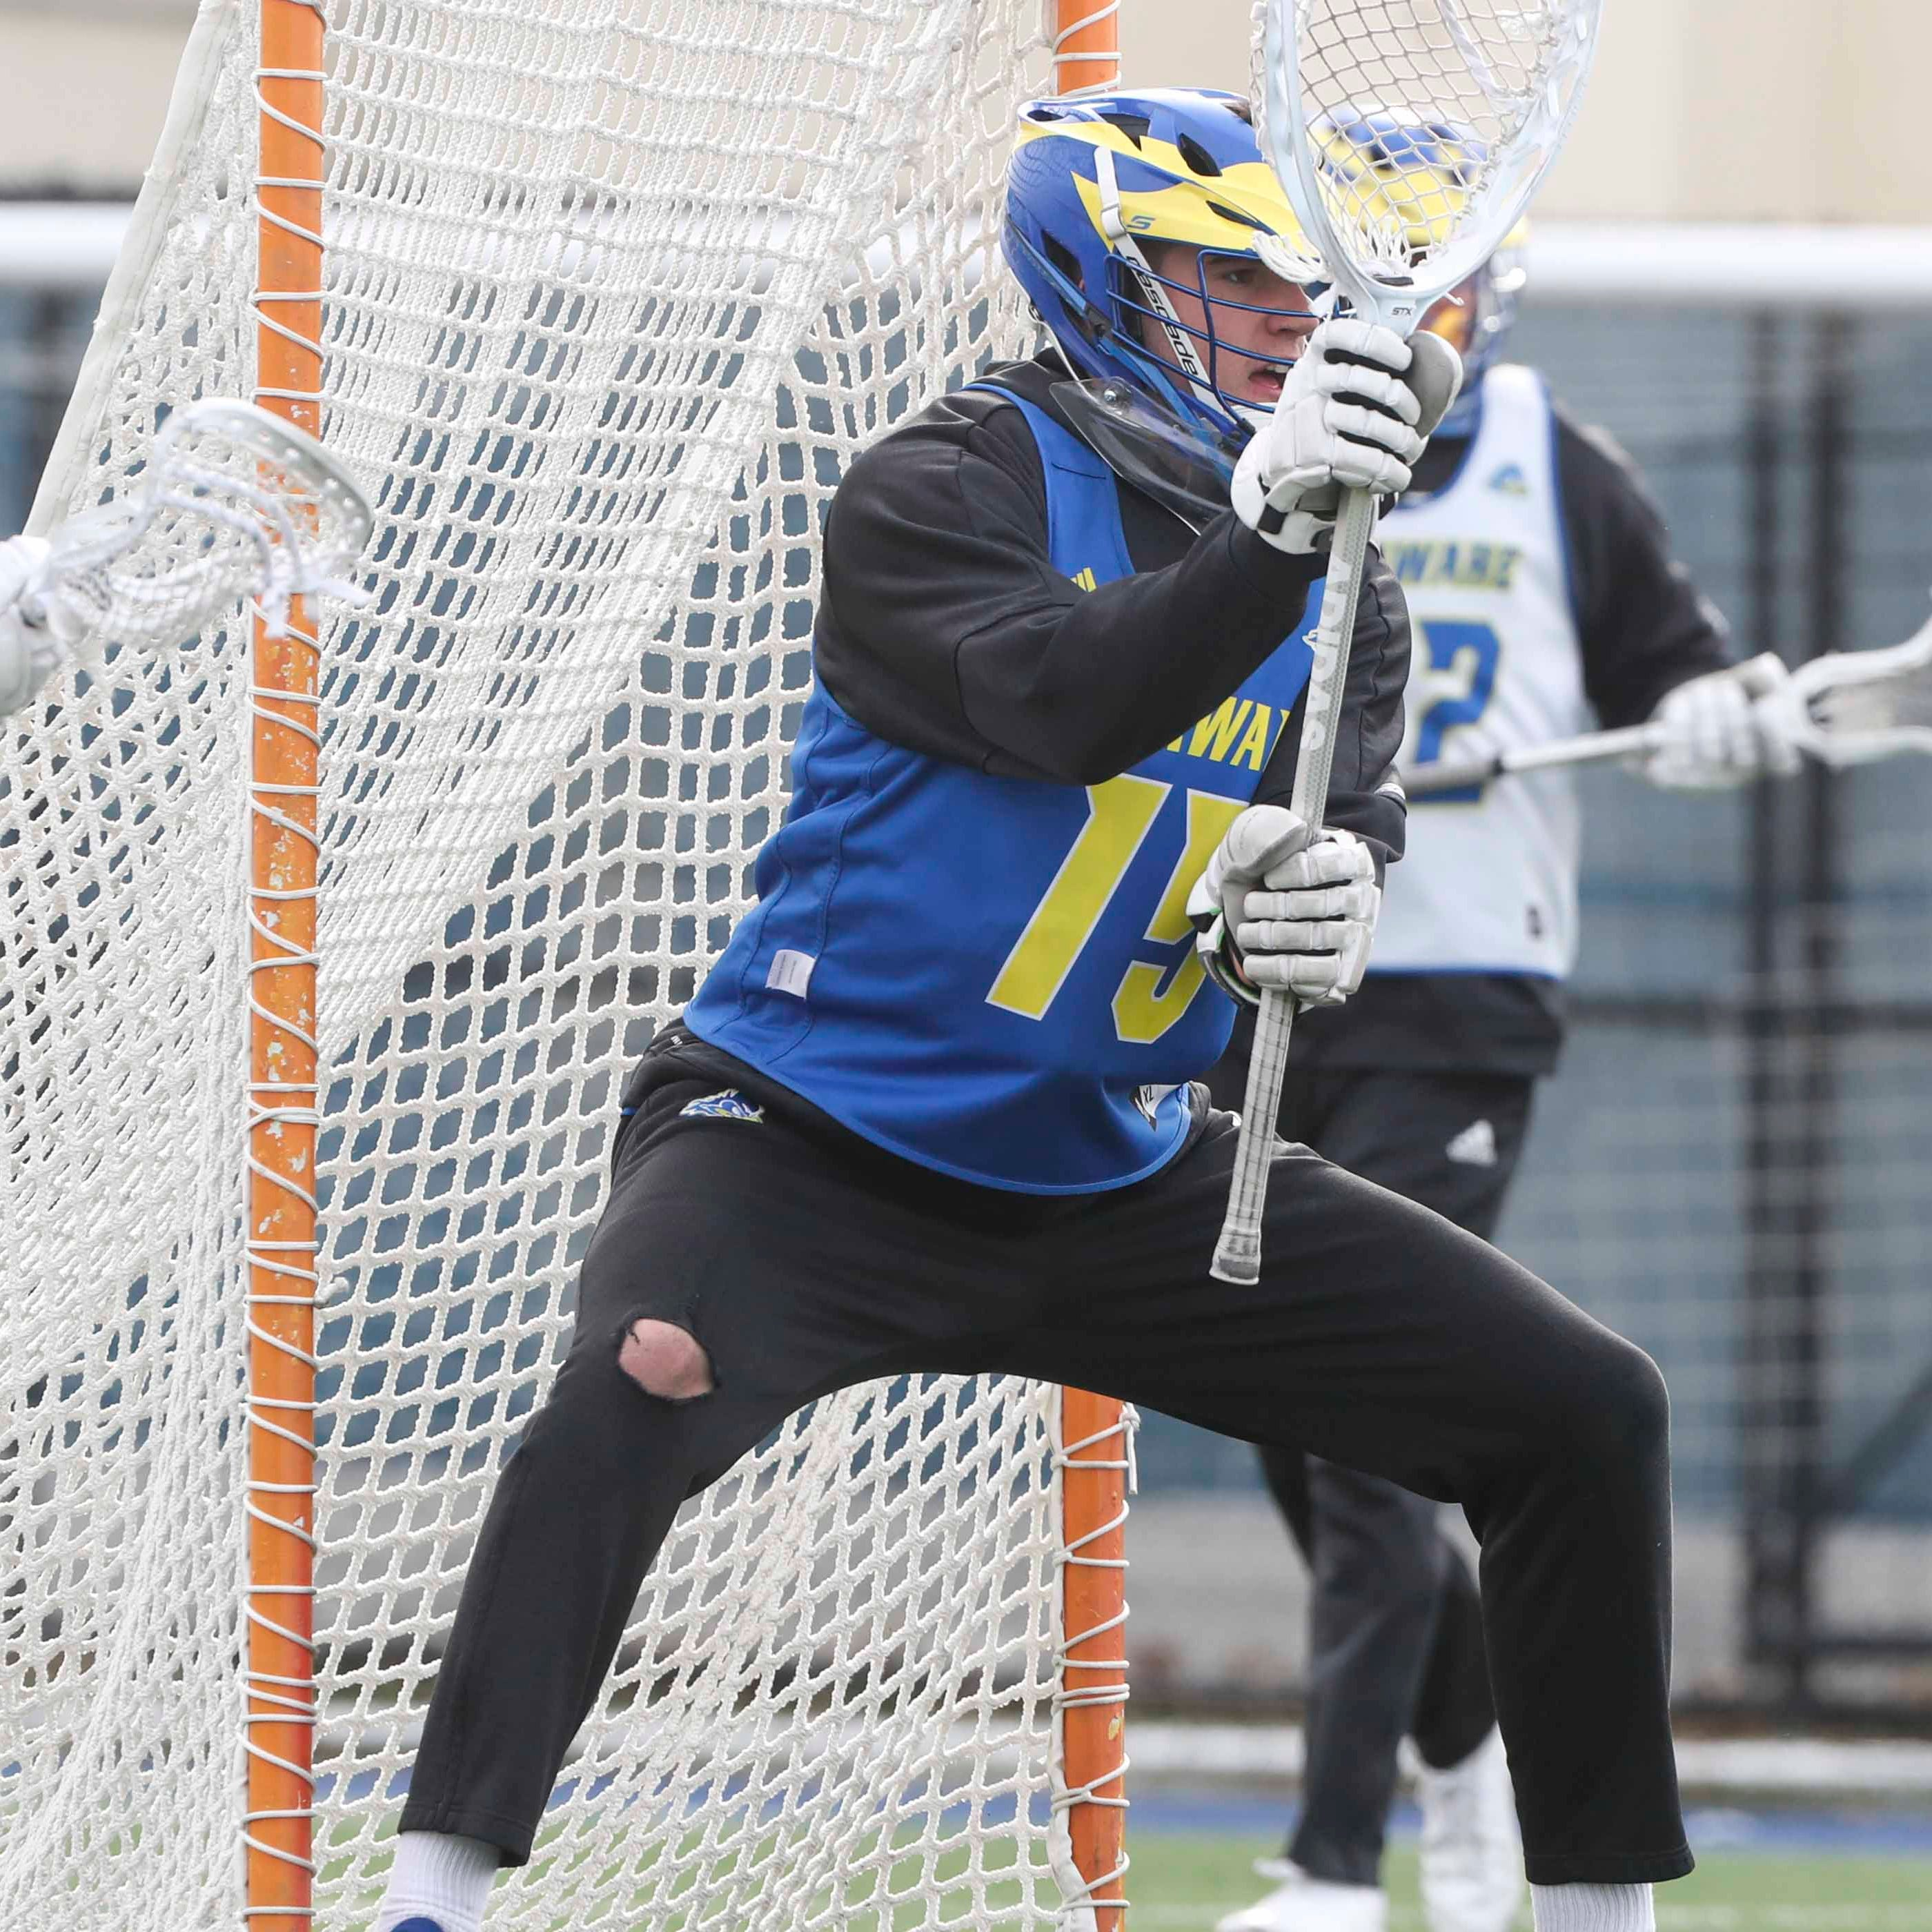 University of Delaware star is a giant among NCAA lacrosse goalies